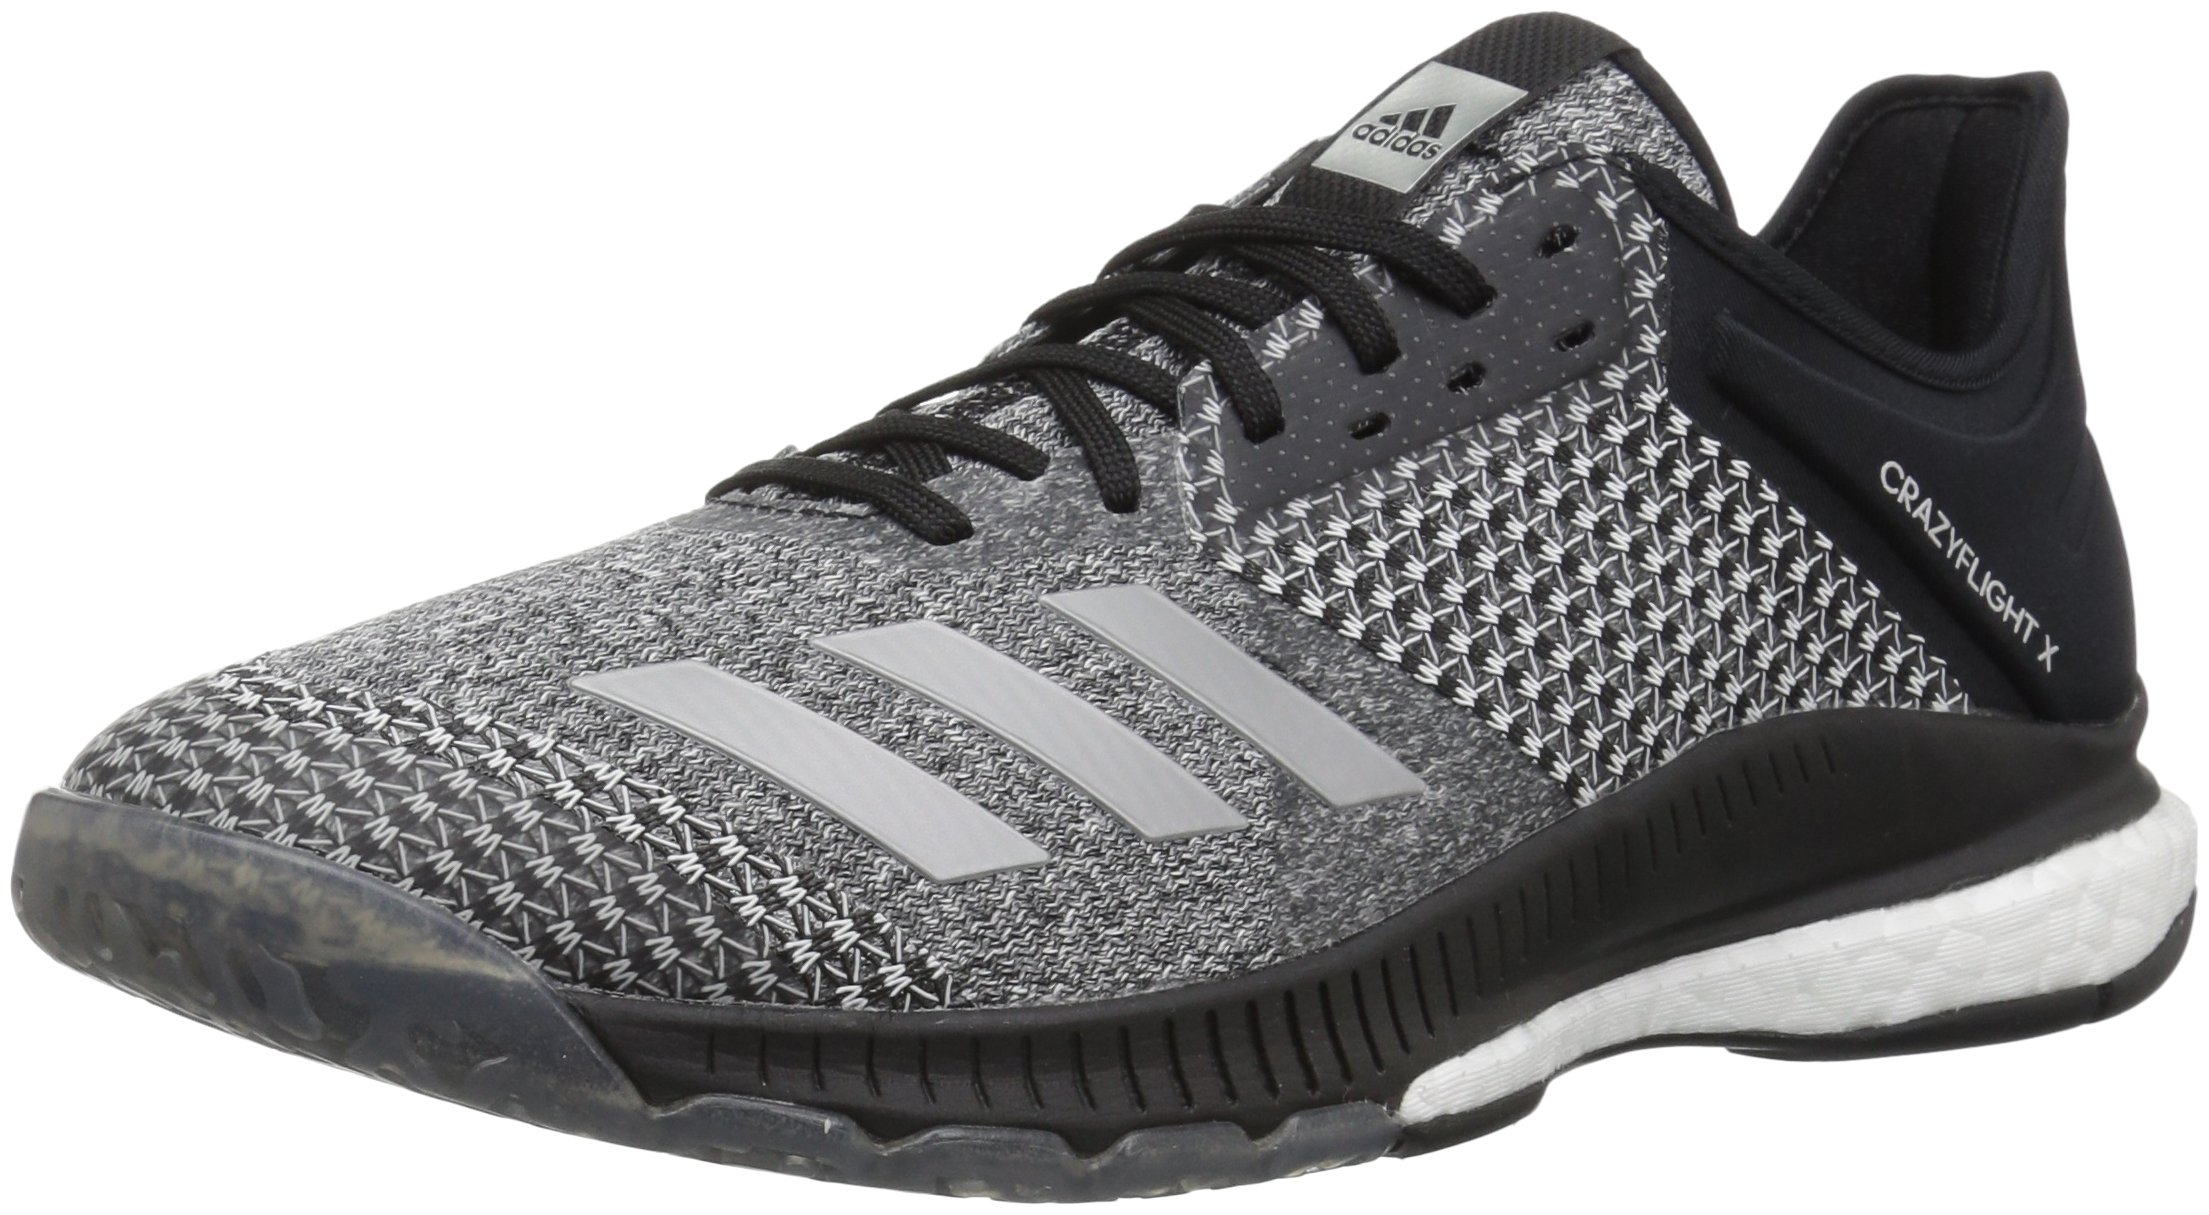 adidas Women's Crazyflight X 2 Volleyball Shoe, Black/Silver Metallic/White, 5 M US